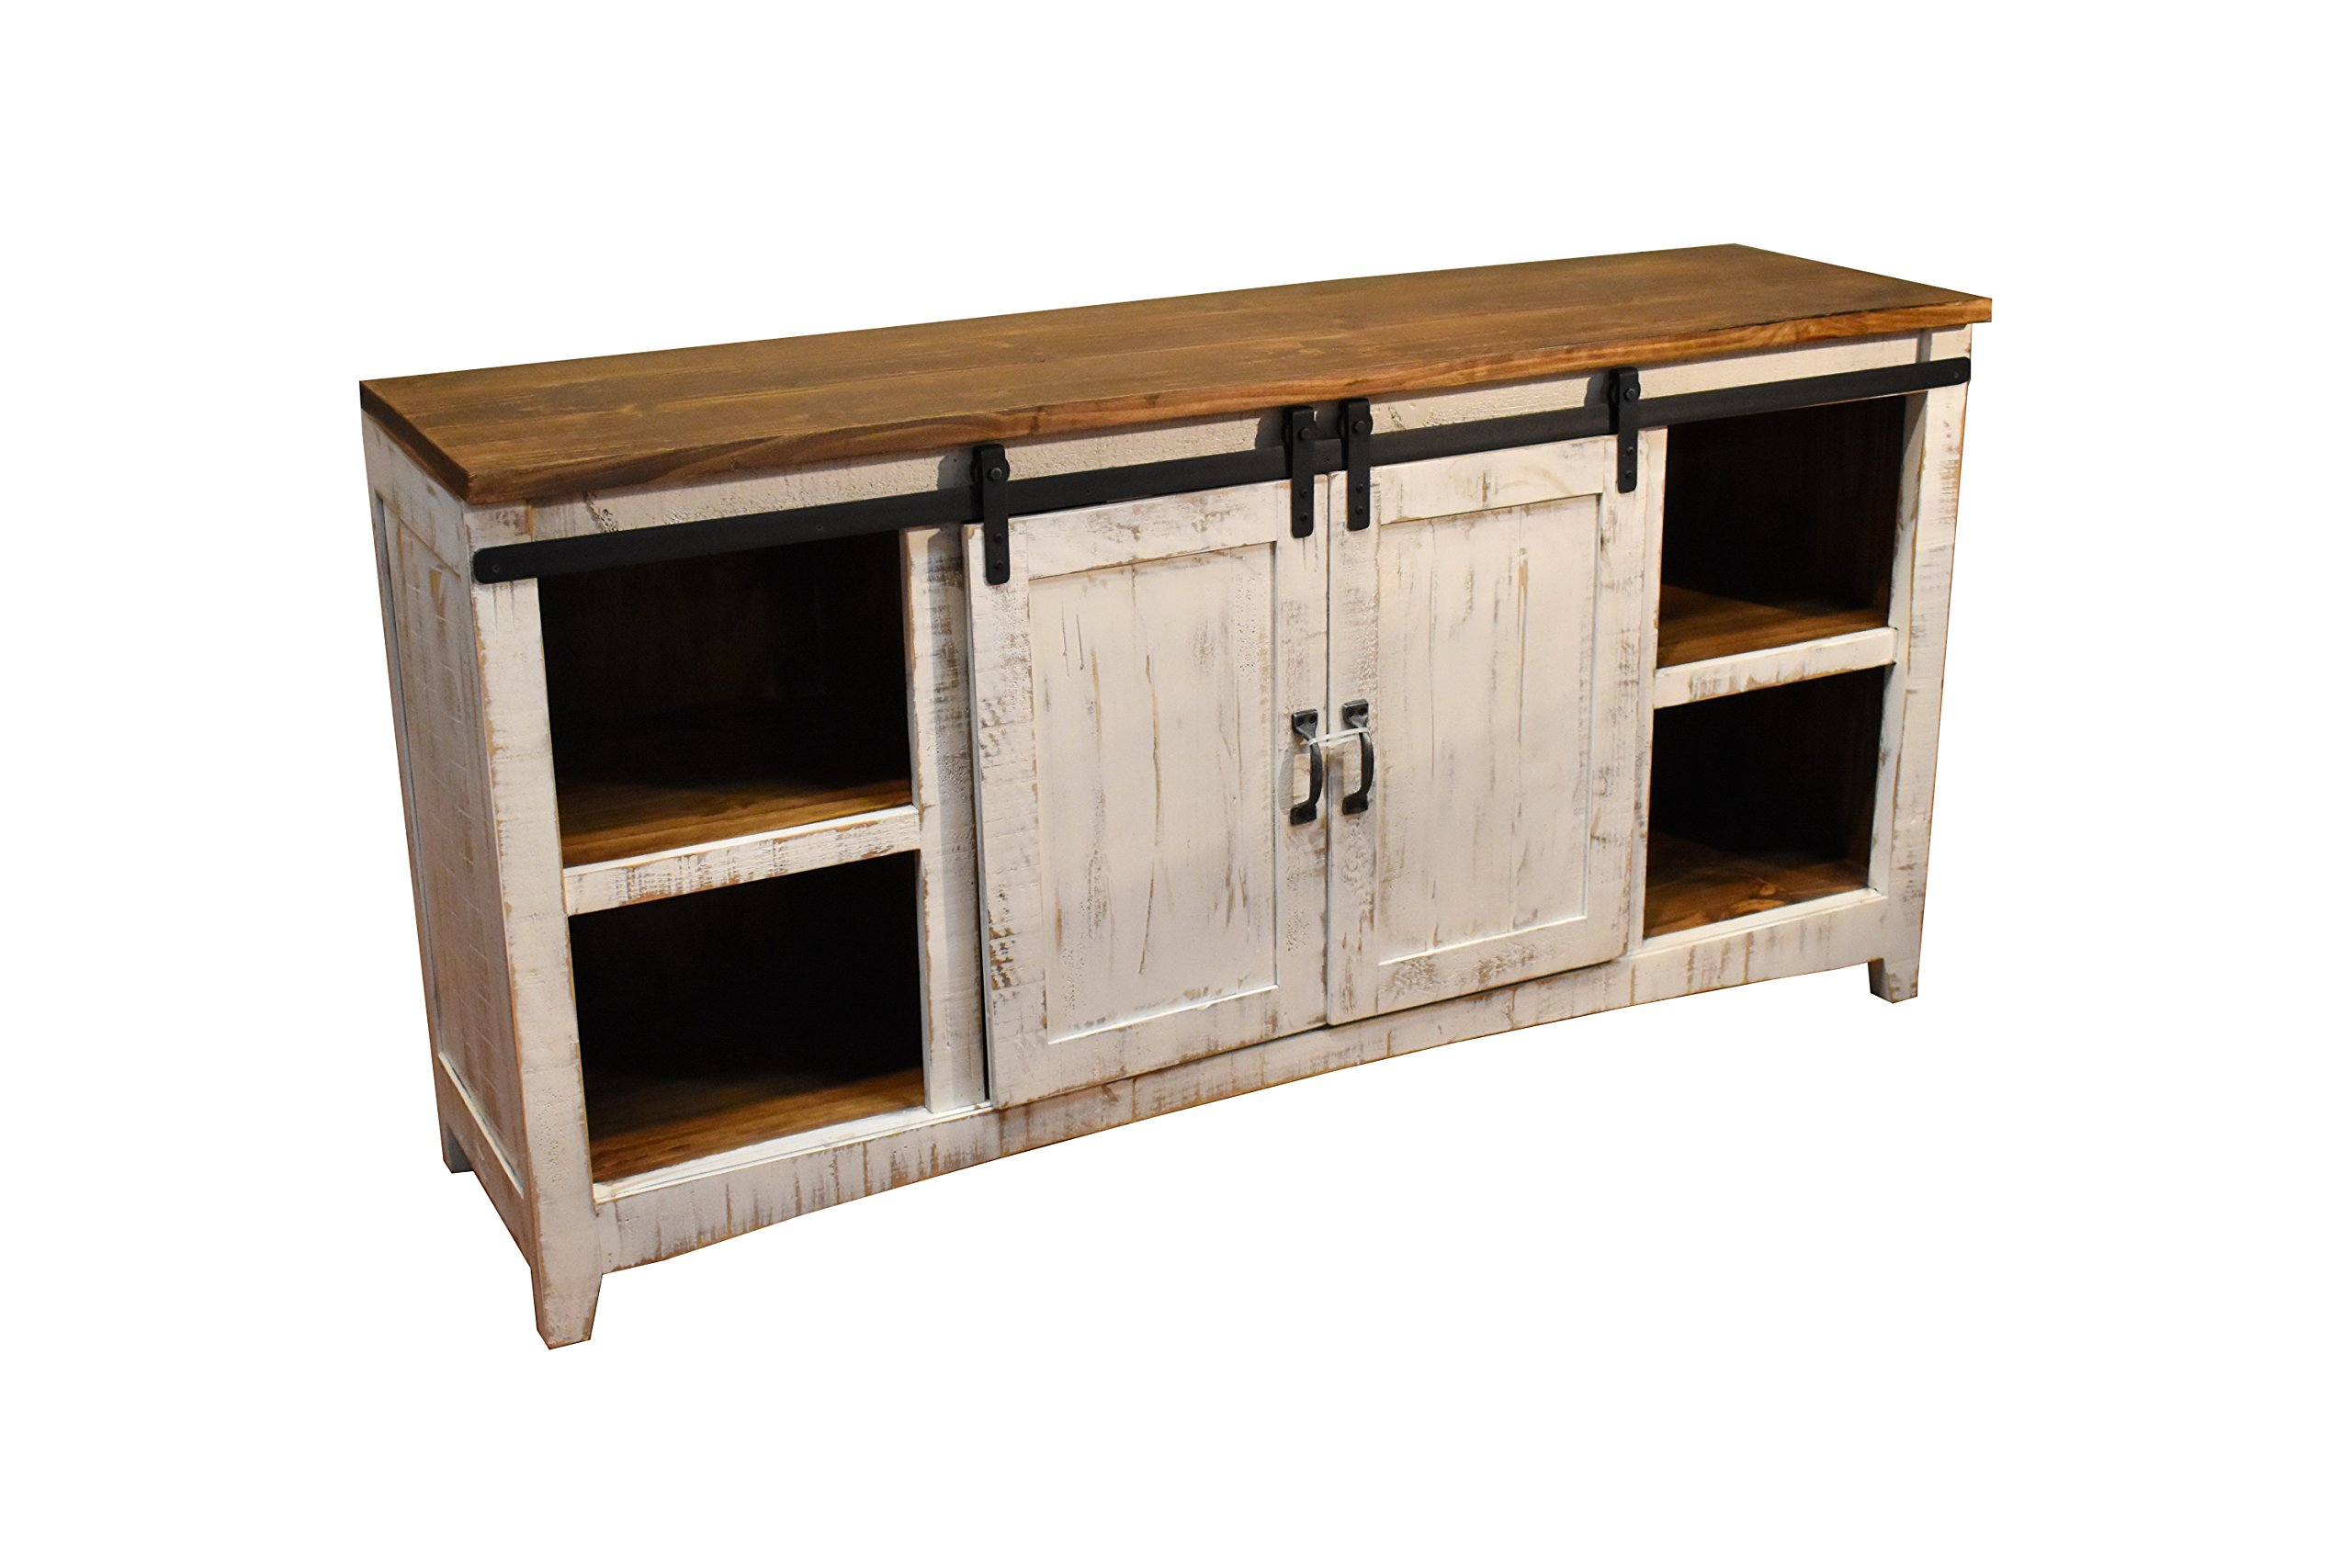 Crafters and Weavers Granville White 67'' TV Stand / Sideboard / Console Table with Sliding Barn Doors by Crafters and Weavers (Image #1)